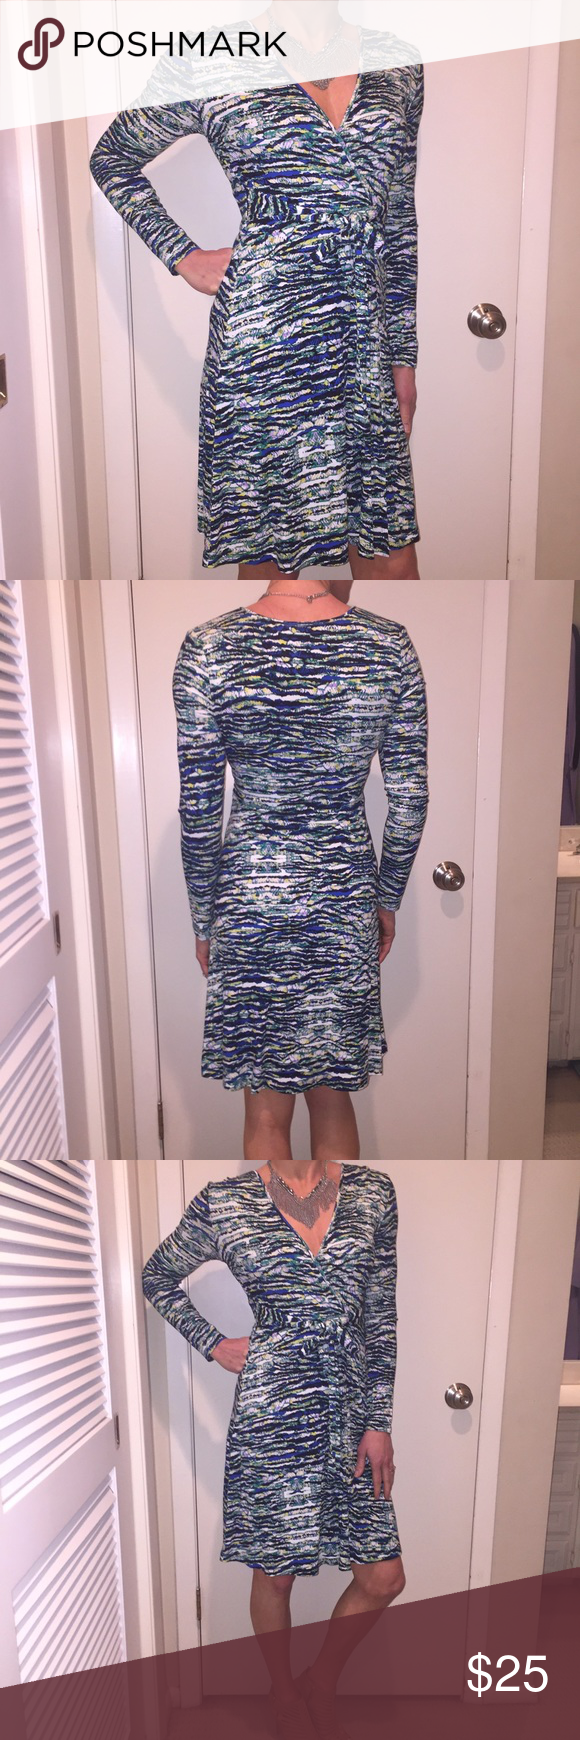 ❄️Striped wrap dress Striped wrap dress with tie waist. Blue, green, black and yellow colors.  Stretchy soft material, super comfy! Worn once, like new! Cynthia Rowley Dresses